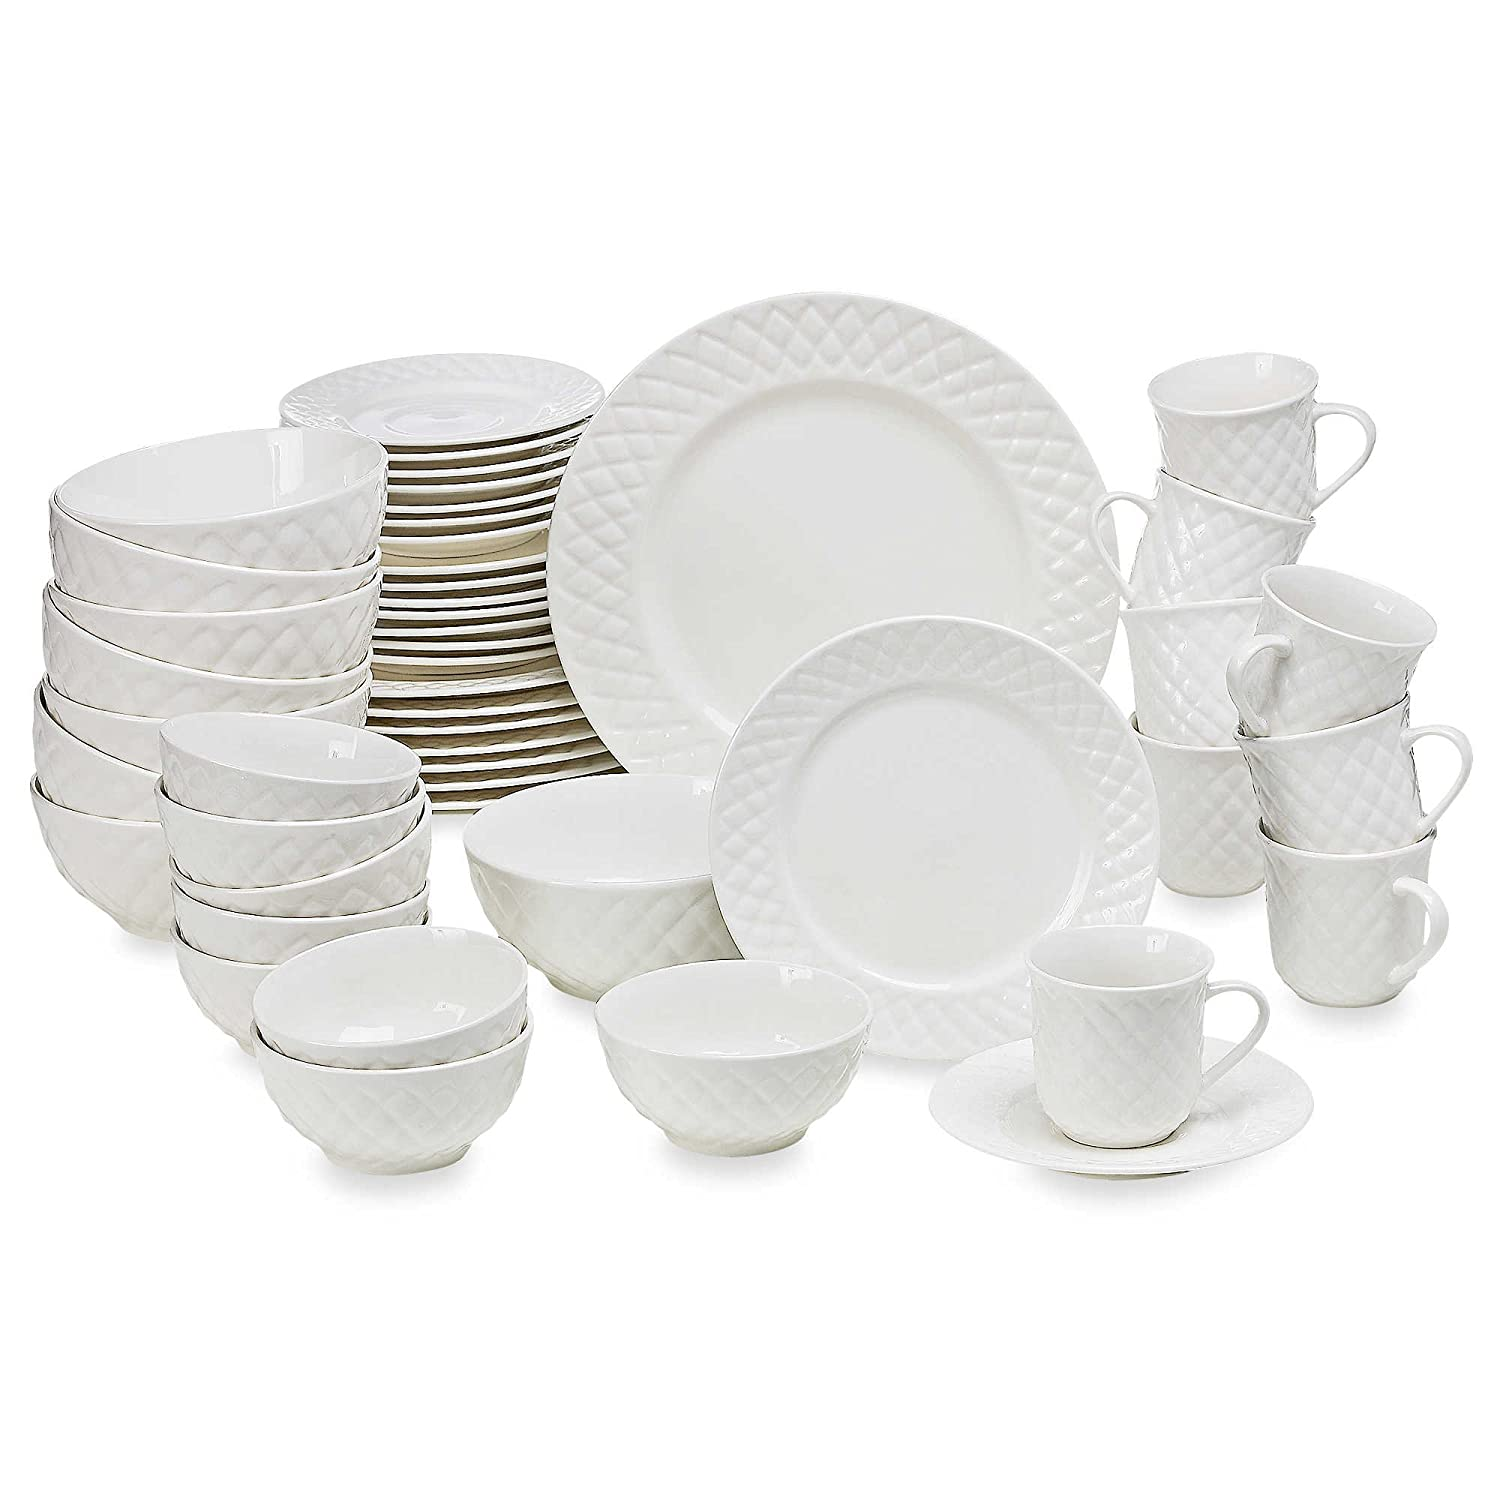 amazoncom gibson home antique quilt 48piece dinnerware set dinnerware sets